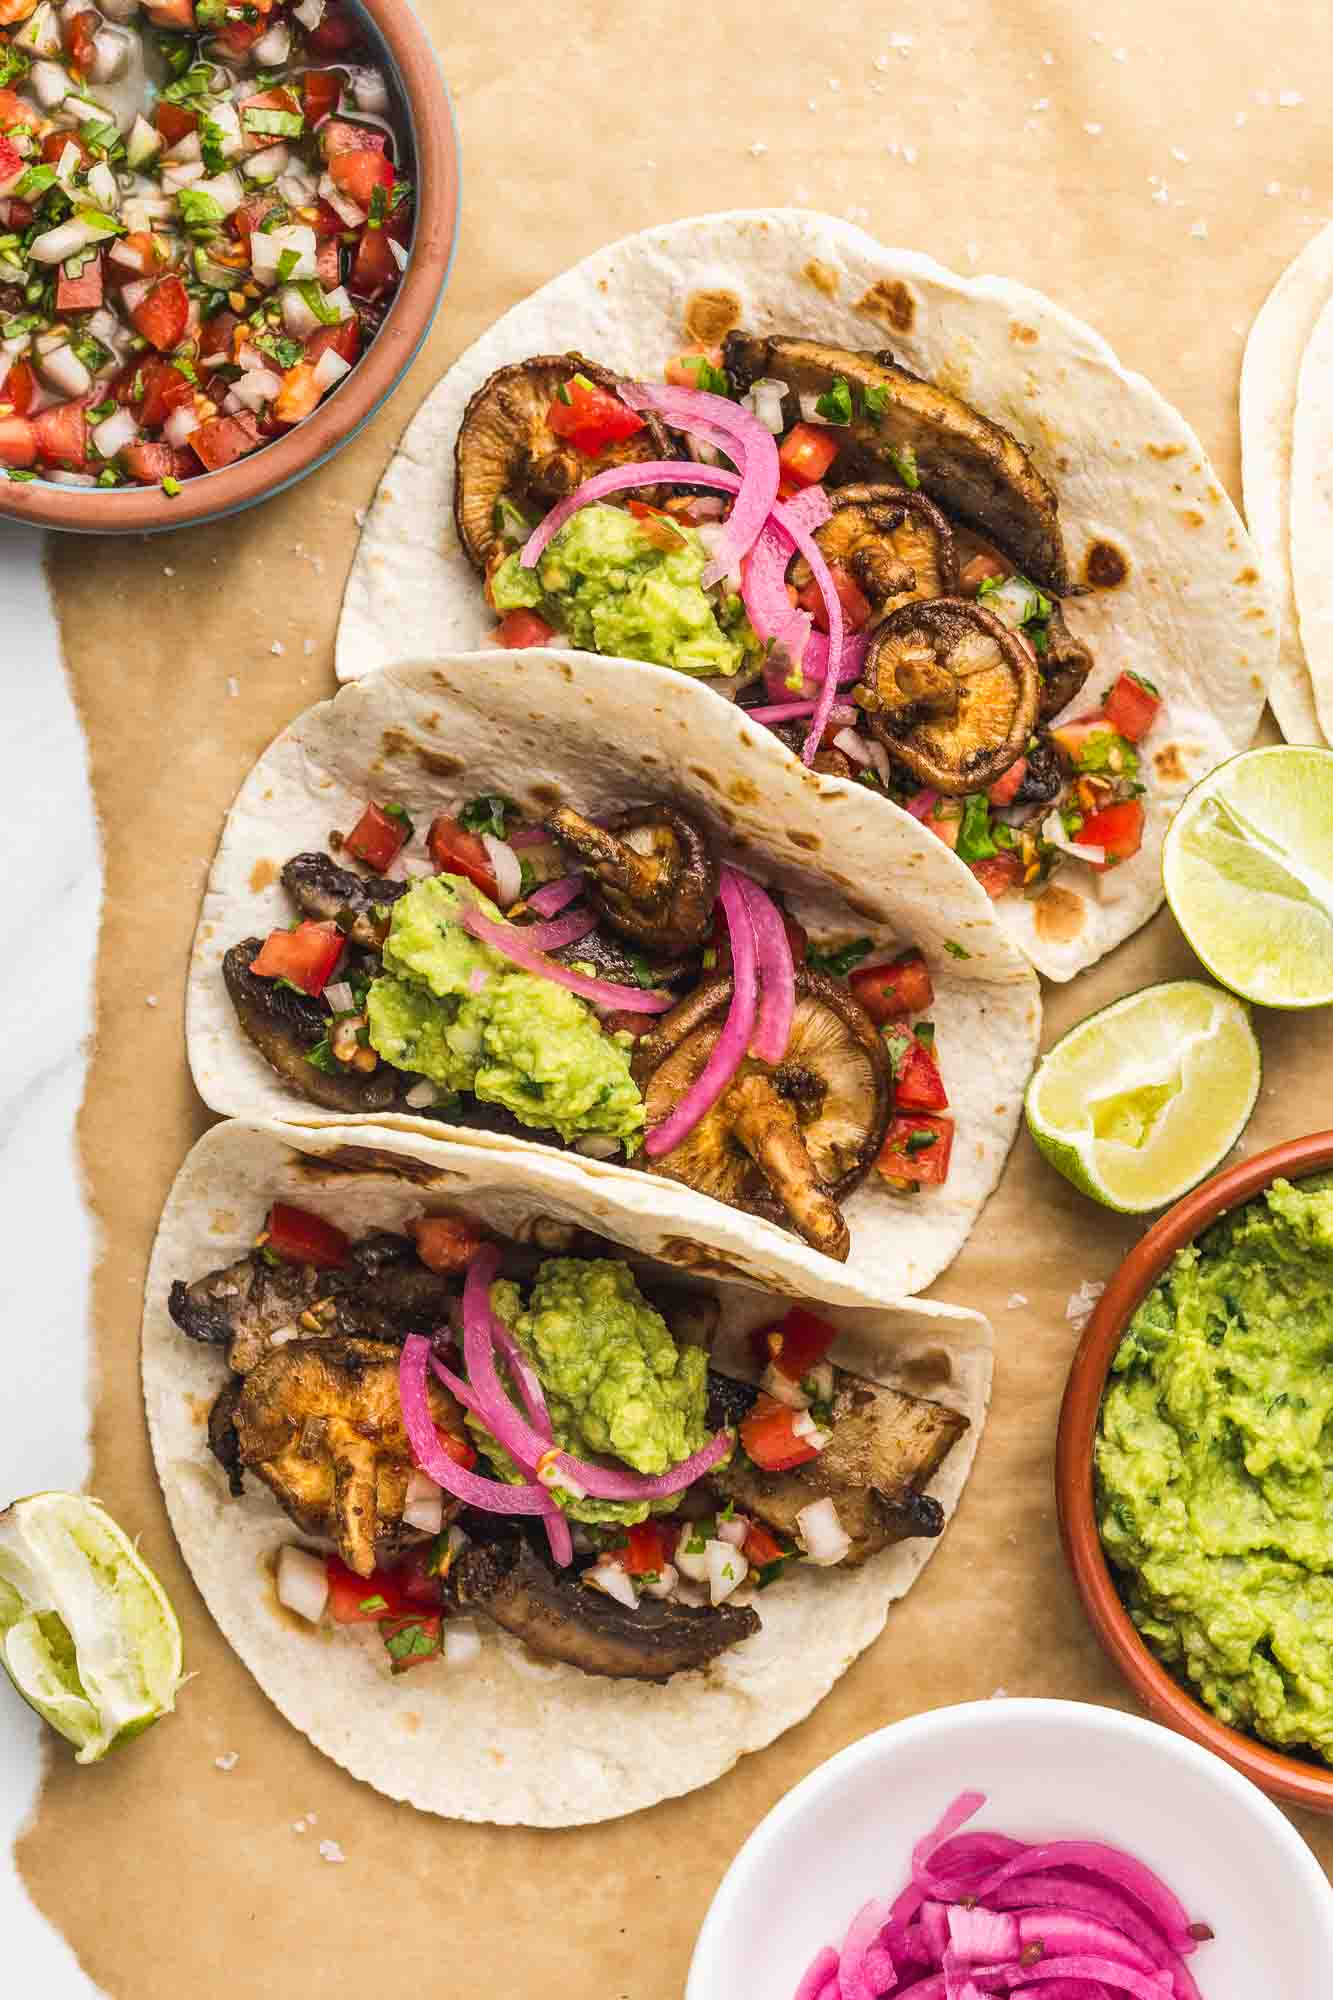 3 mushroom tacos with wedges of lime, guacamole, pico de gallo, and quick pickled onions.